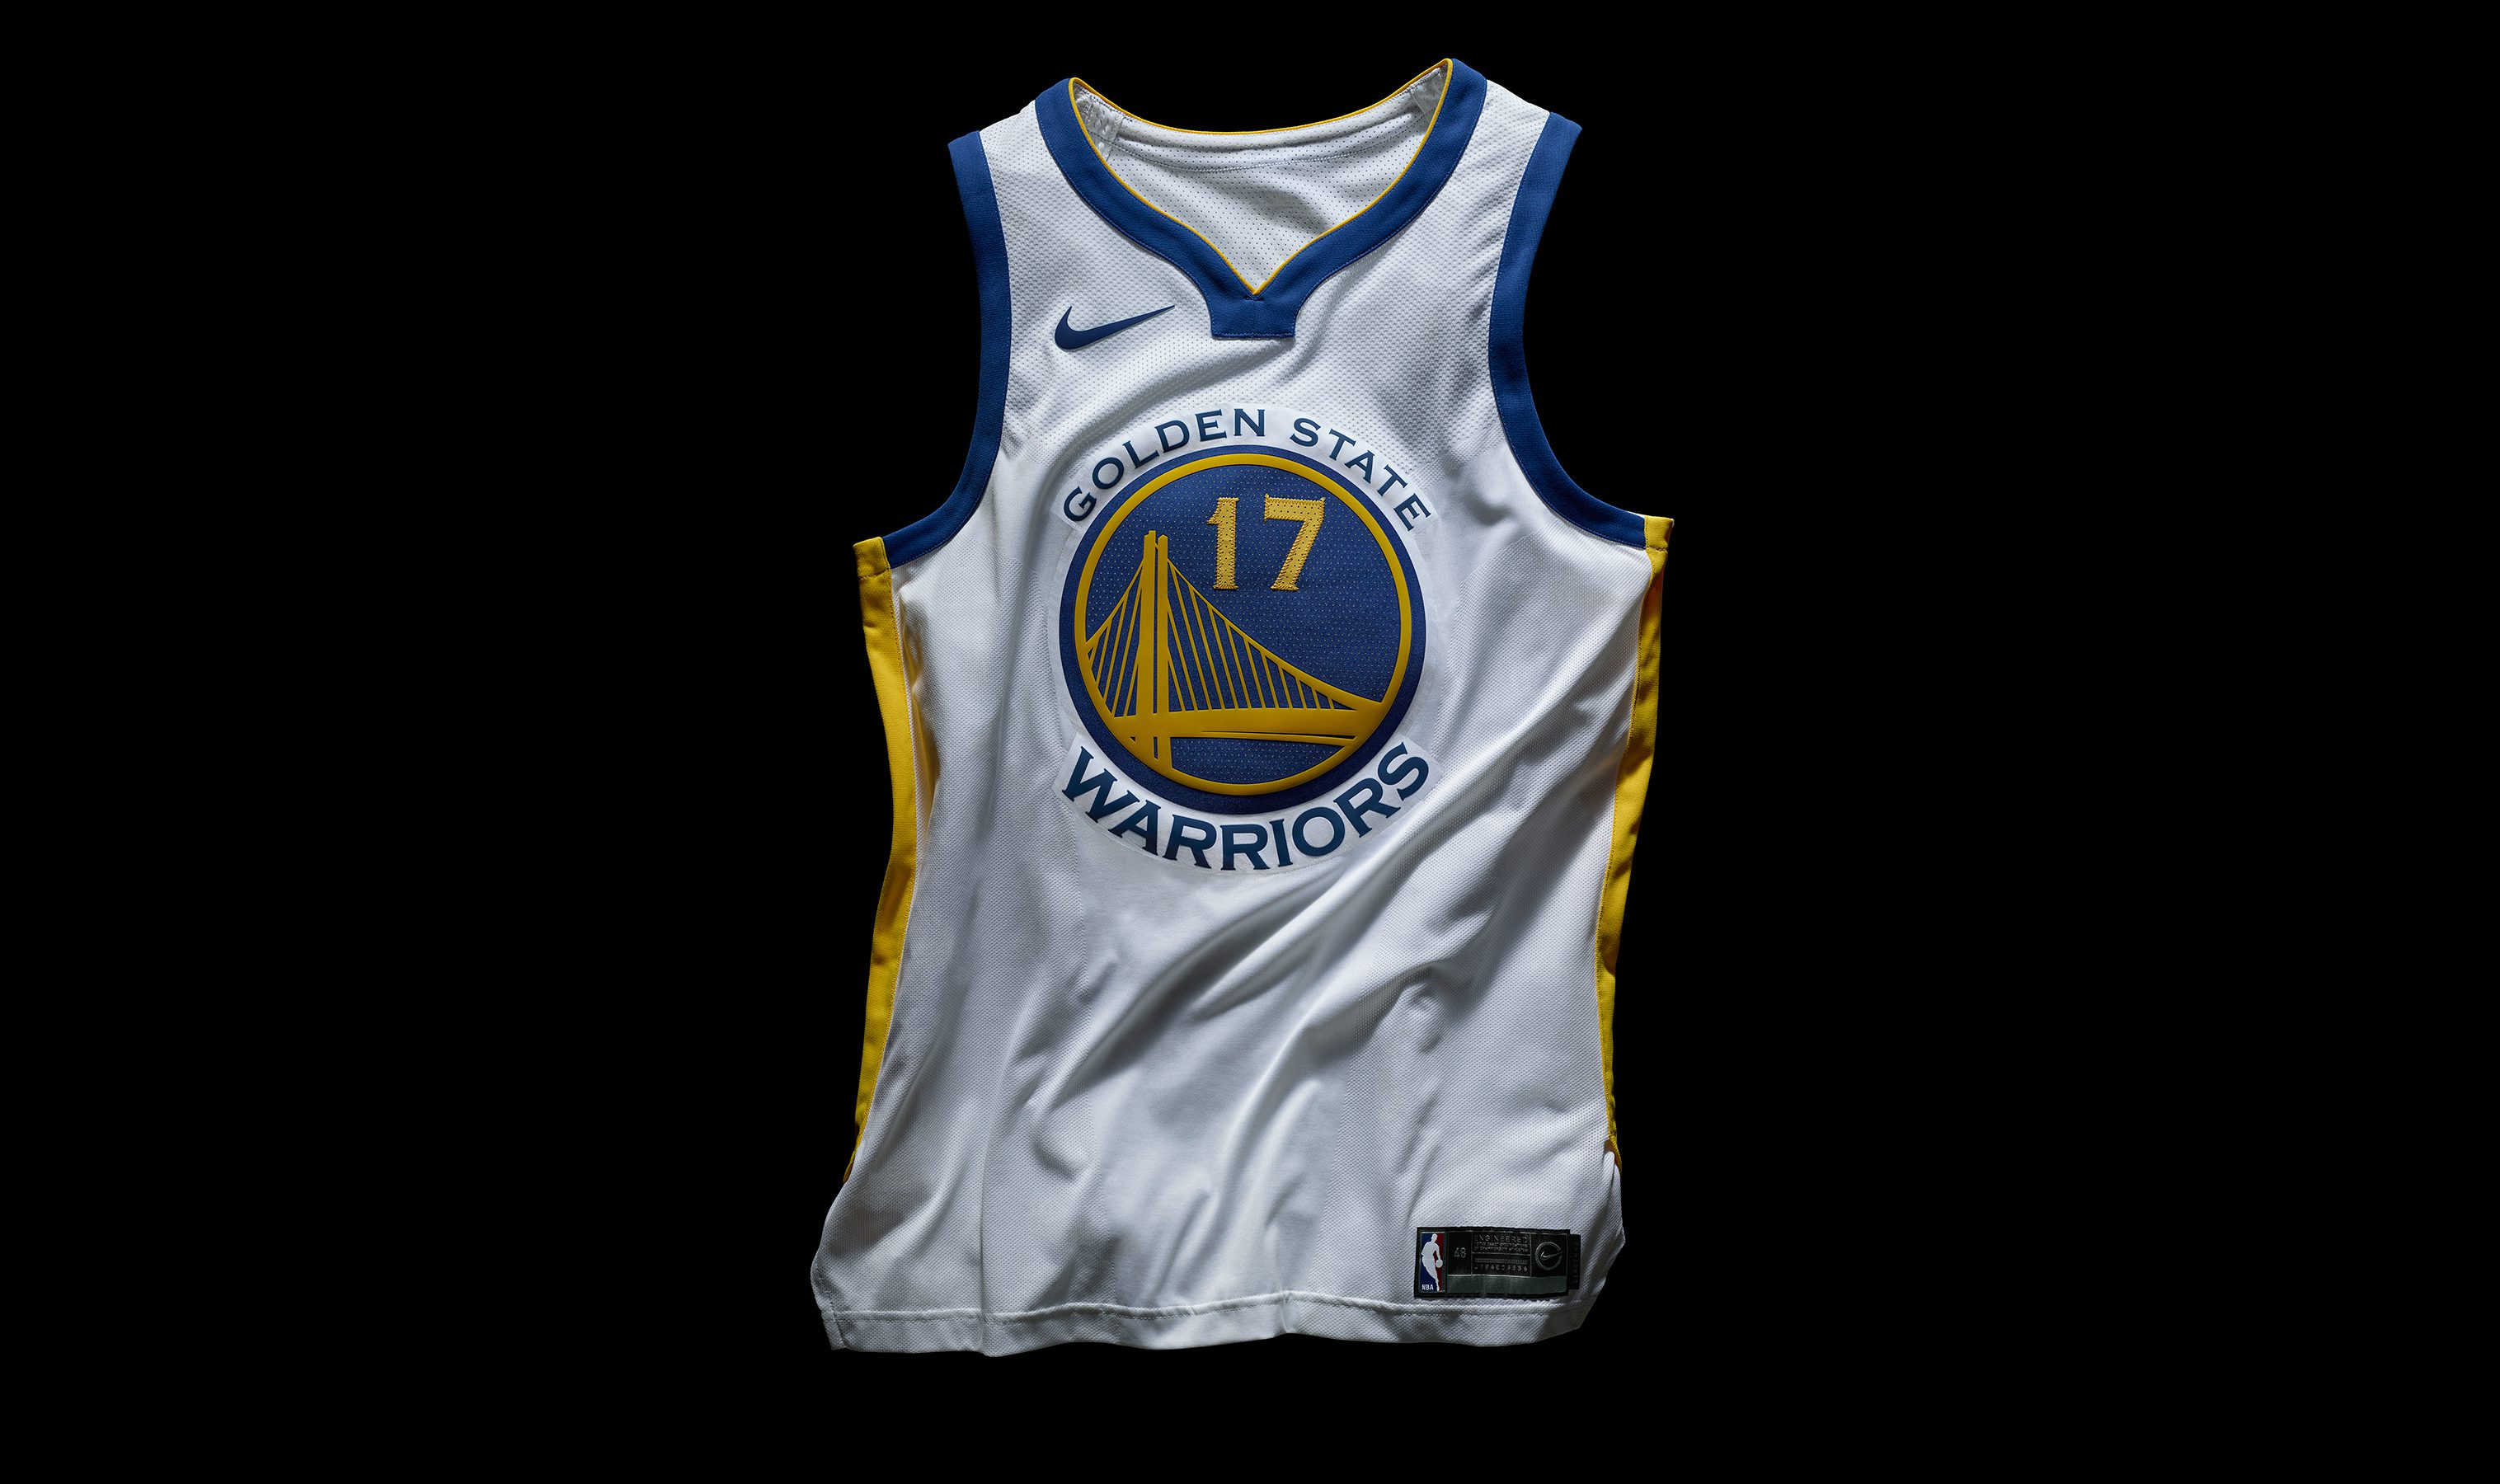 Nike's new Golden State Warriors jersey